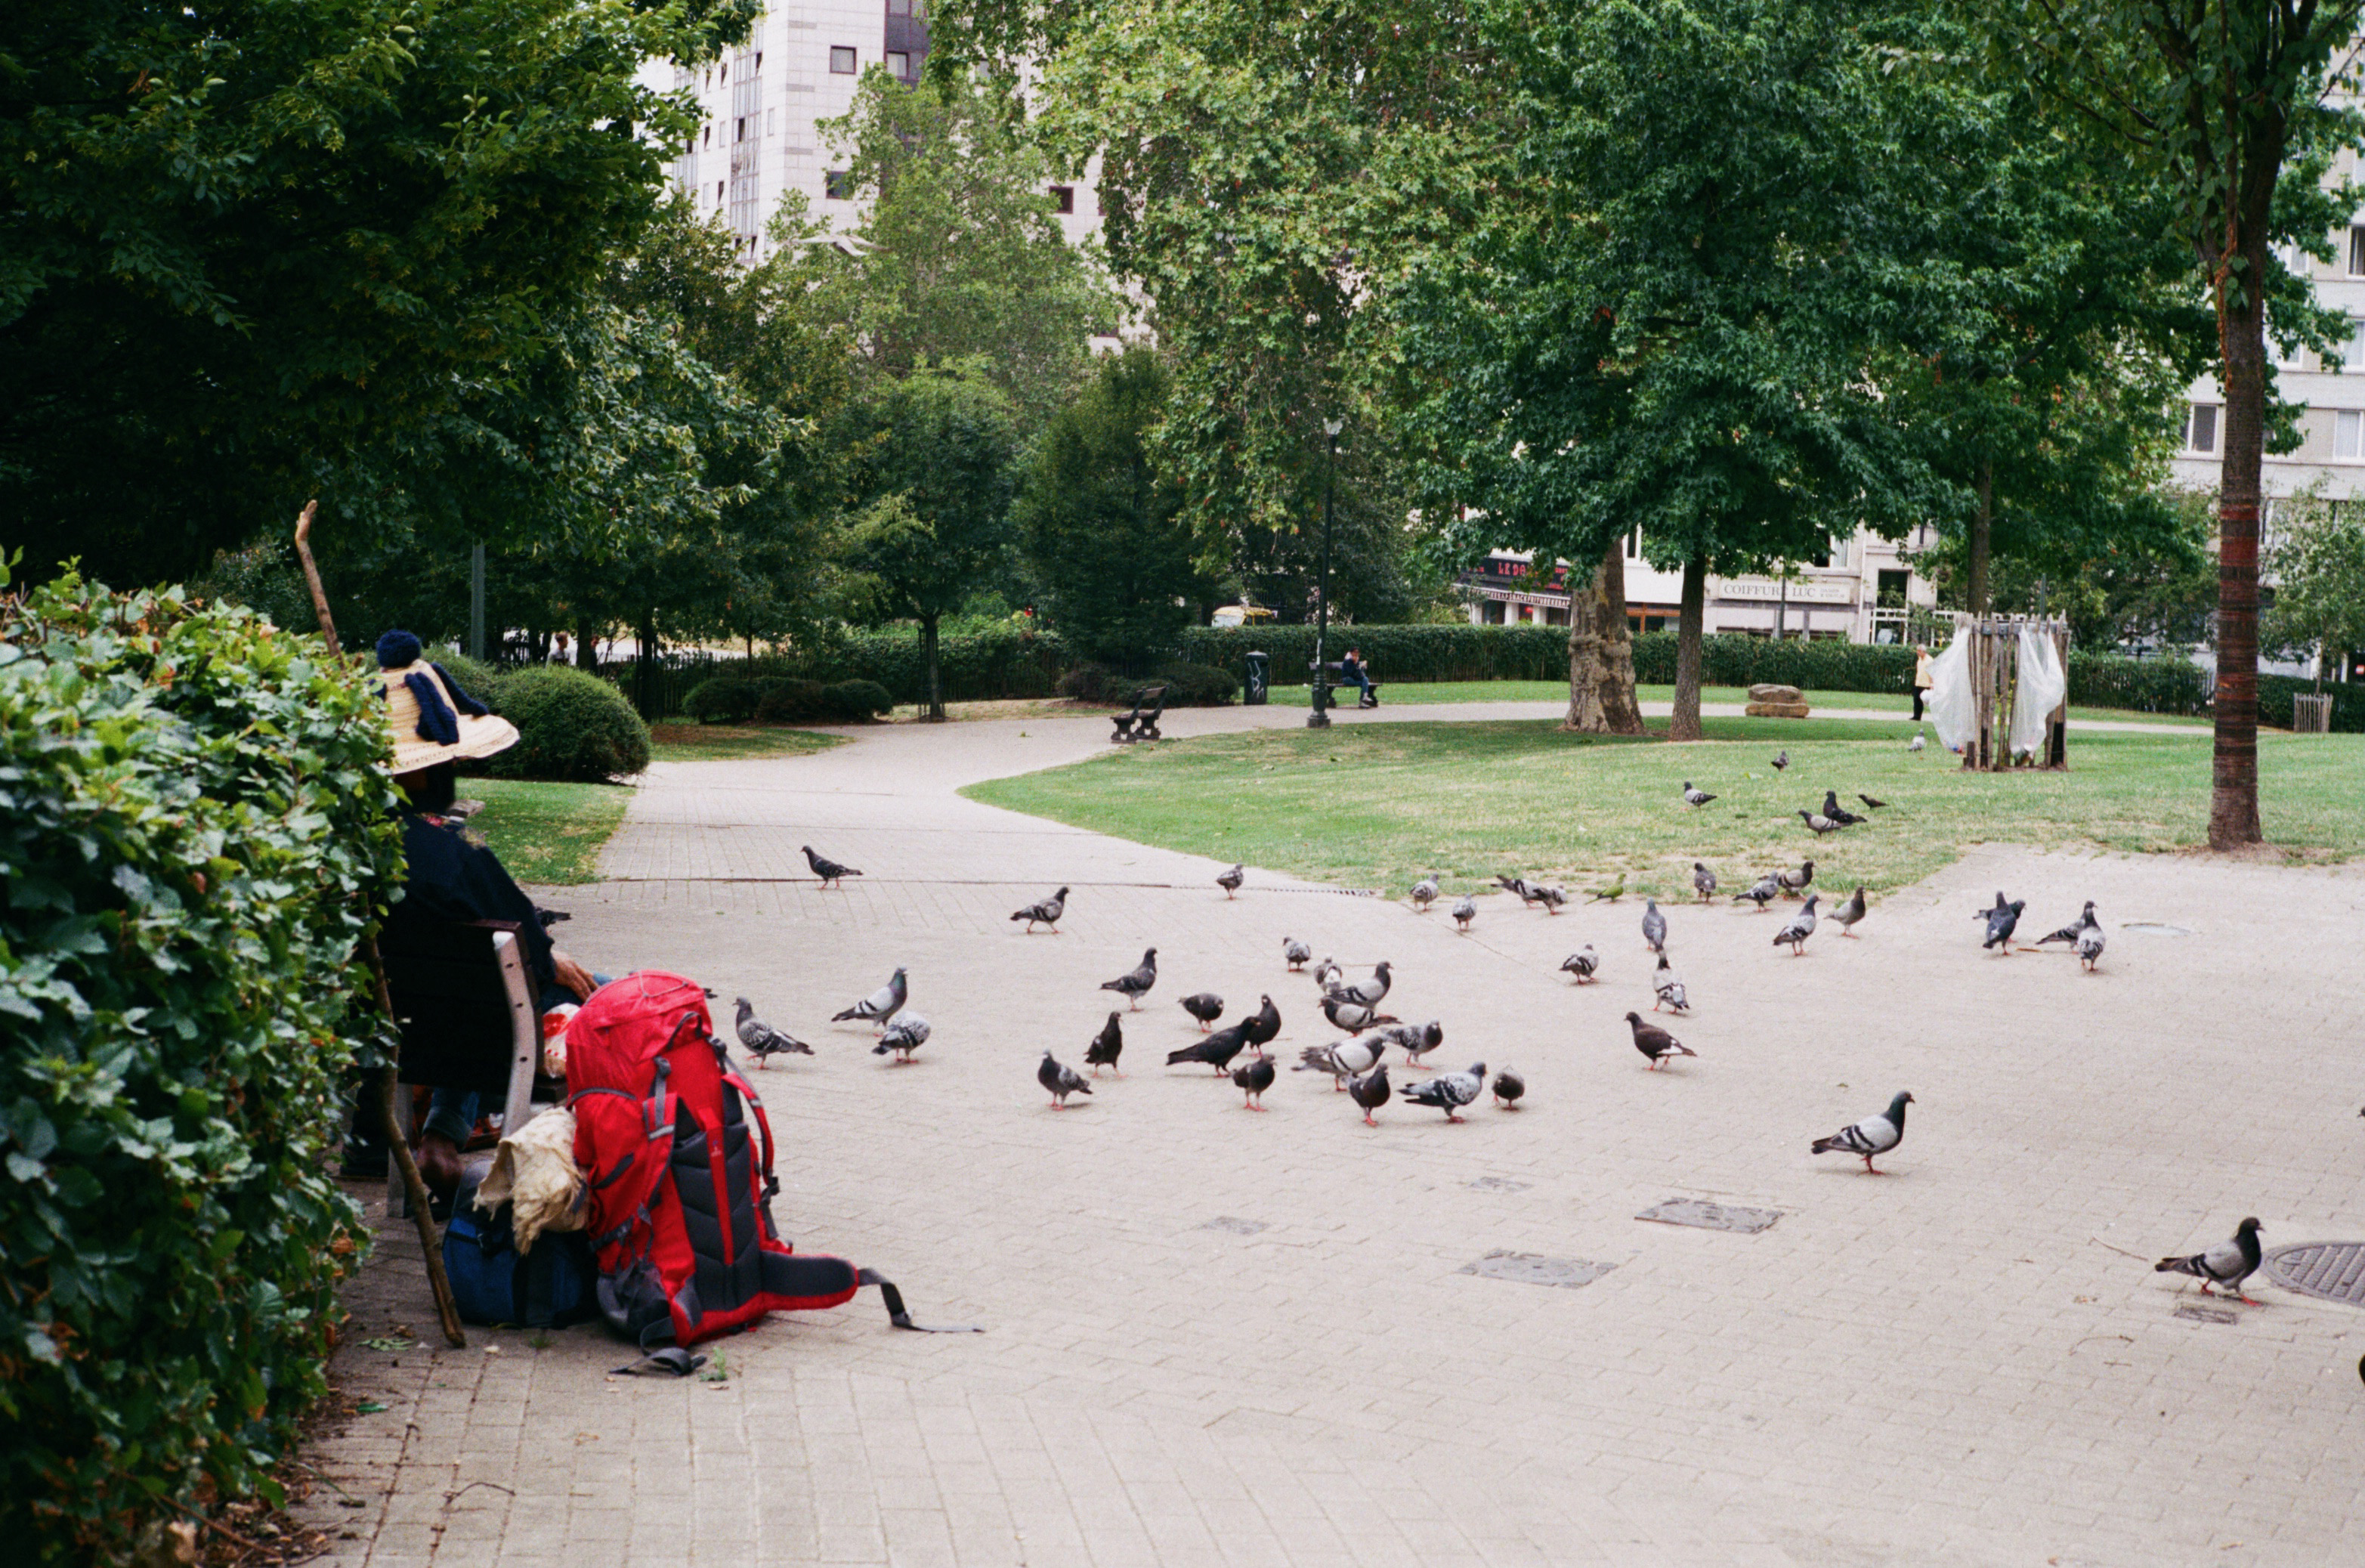 A man from another world is seated in the parc